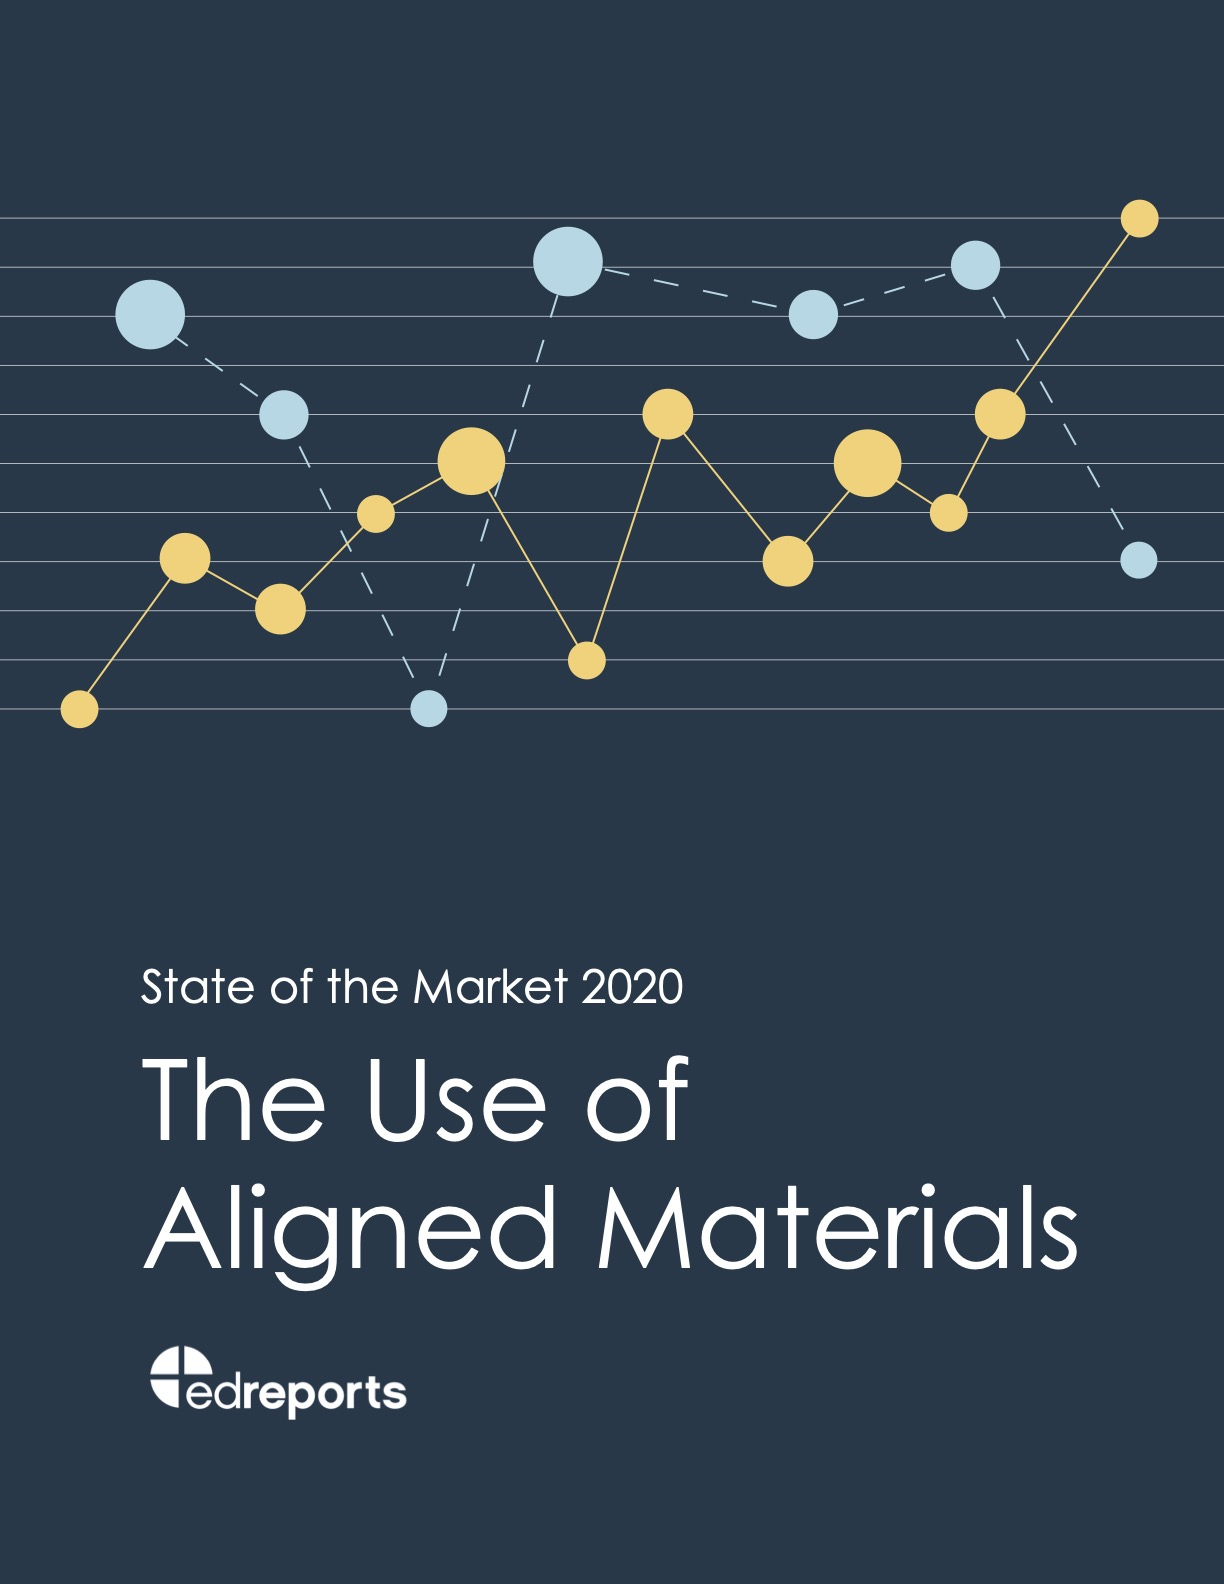 EdReports-2020-State-of-the-Market-Use-of-Aligned-Materials_FIN_1.jpg